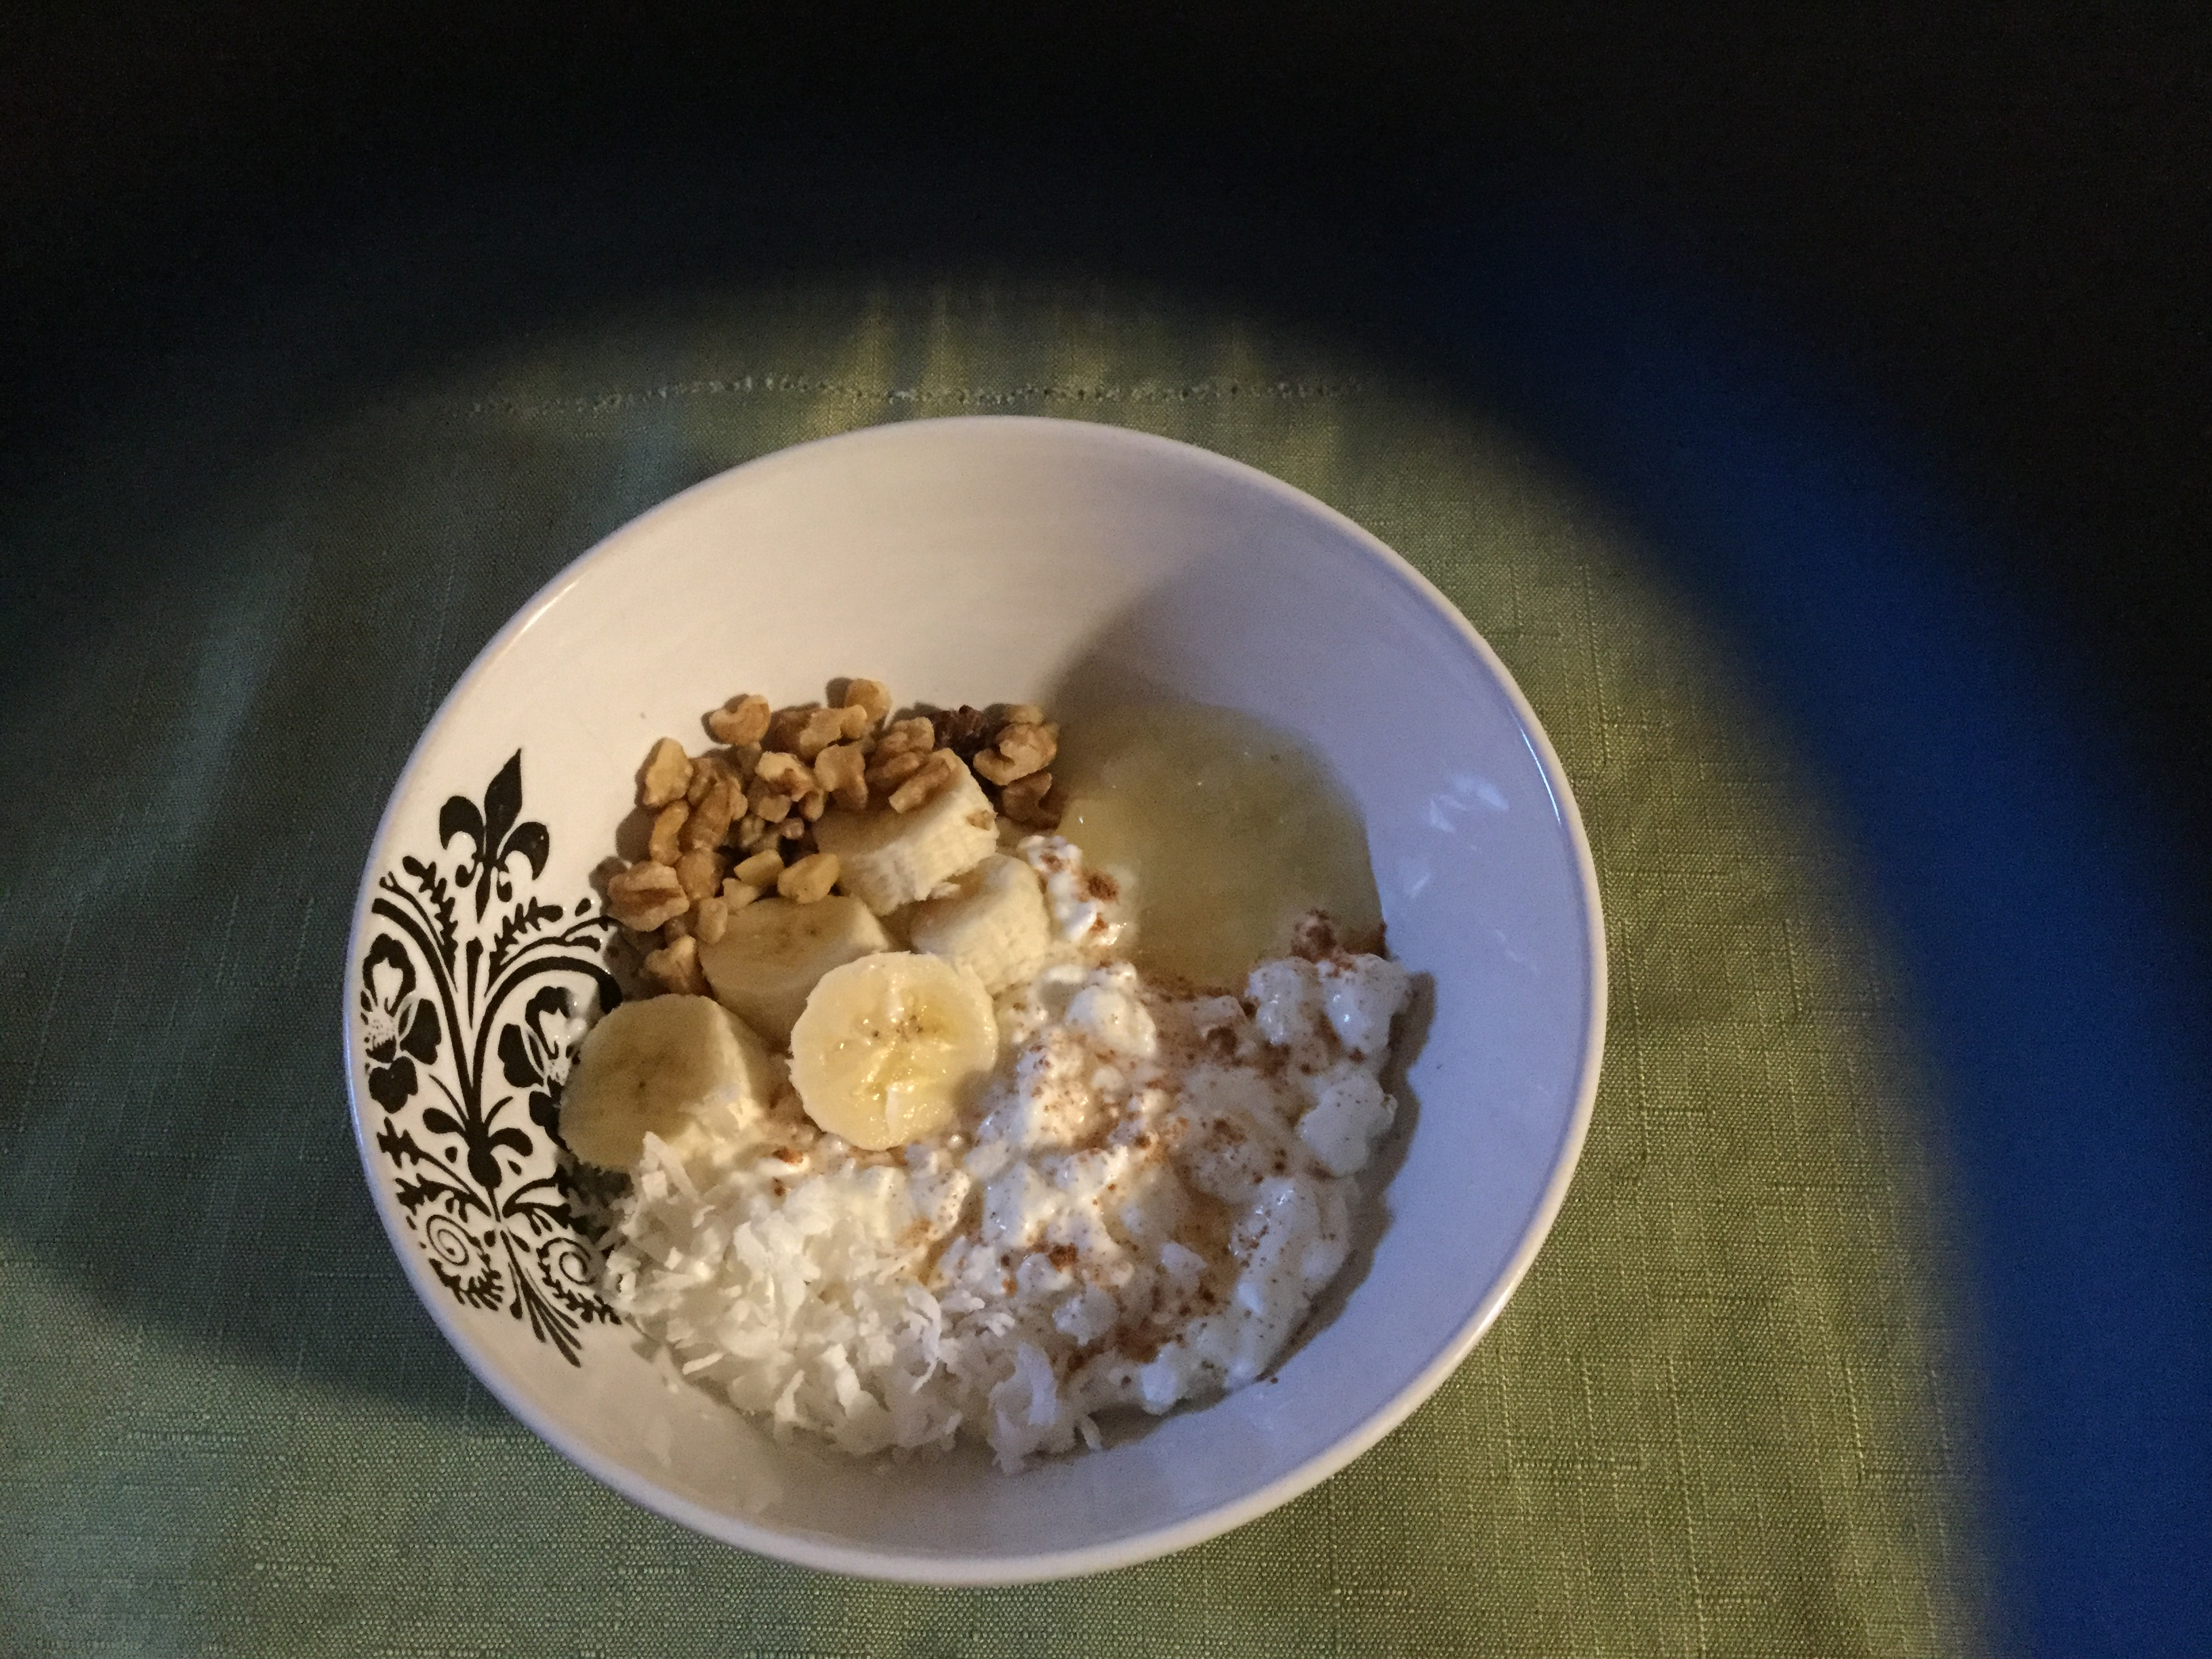 Hummingbird Cake Cottage Cheese Bowl TeaLover767